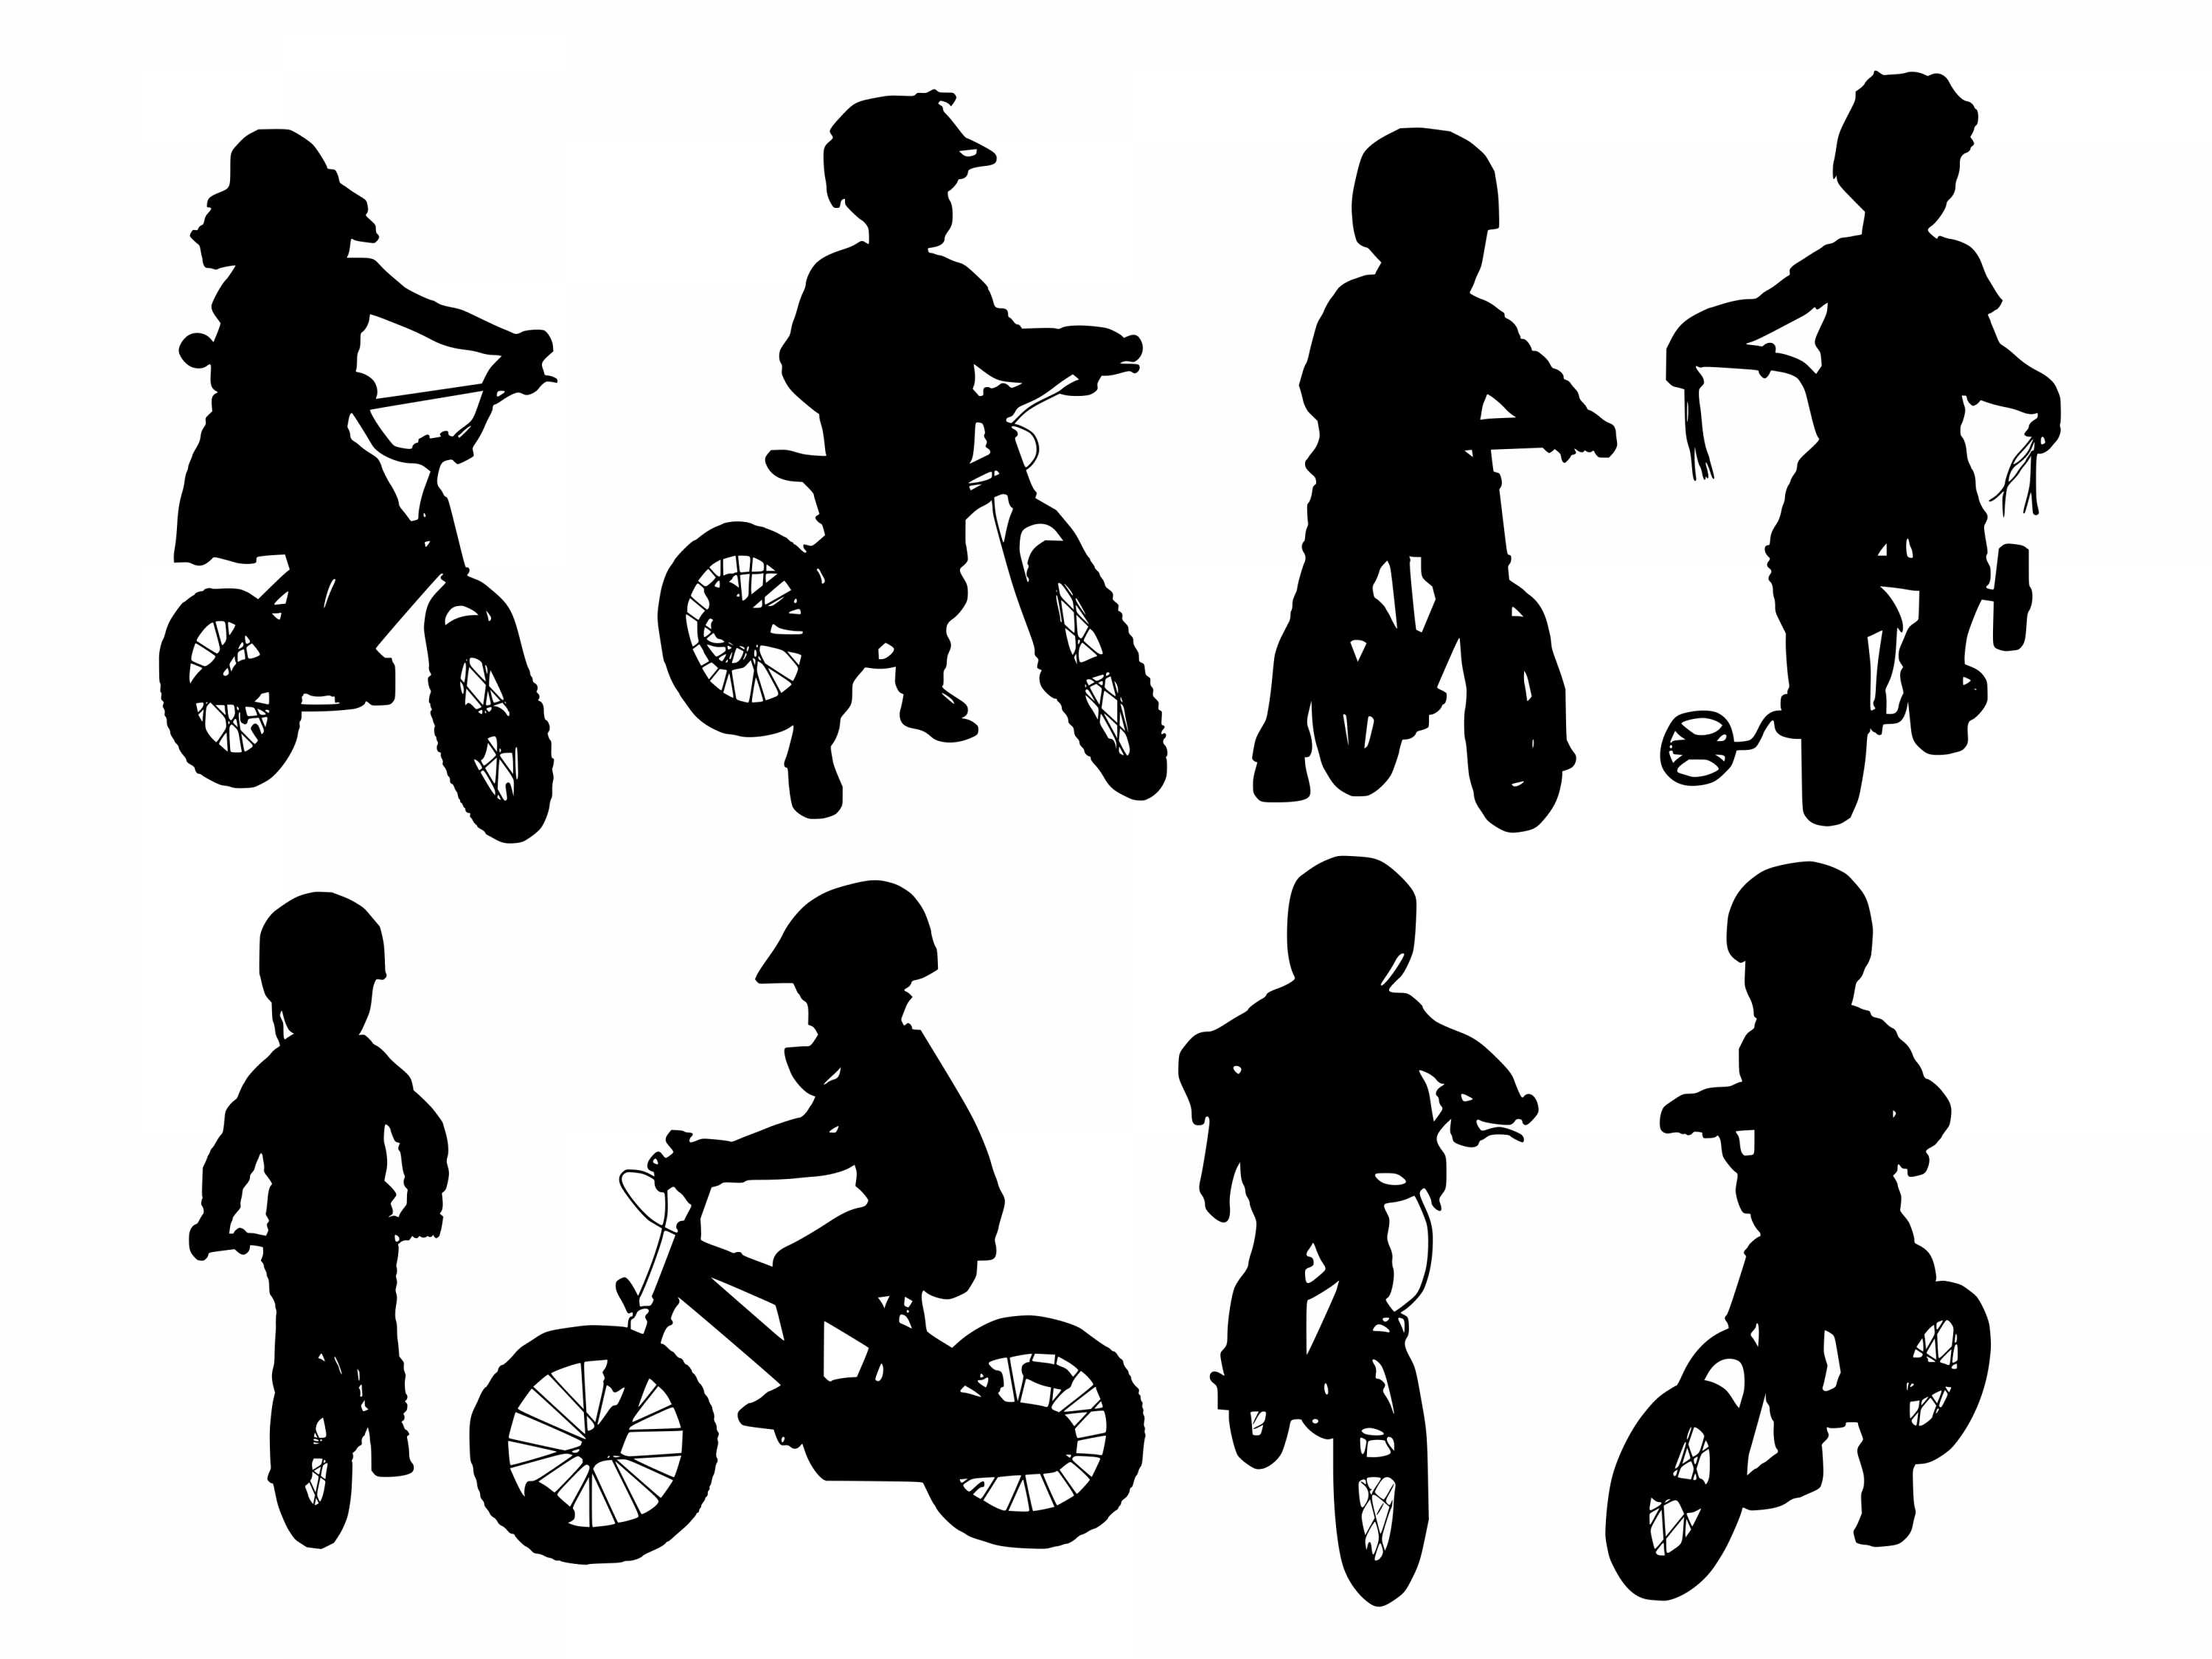 kid-on-bike-silhouette-cover.jpg